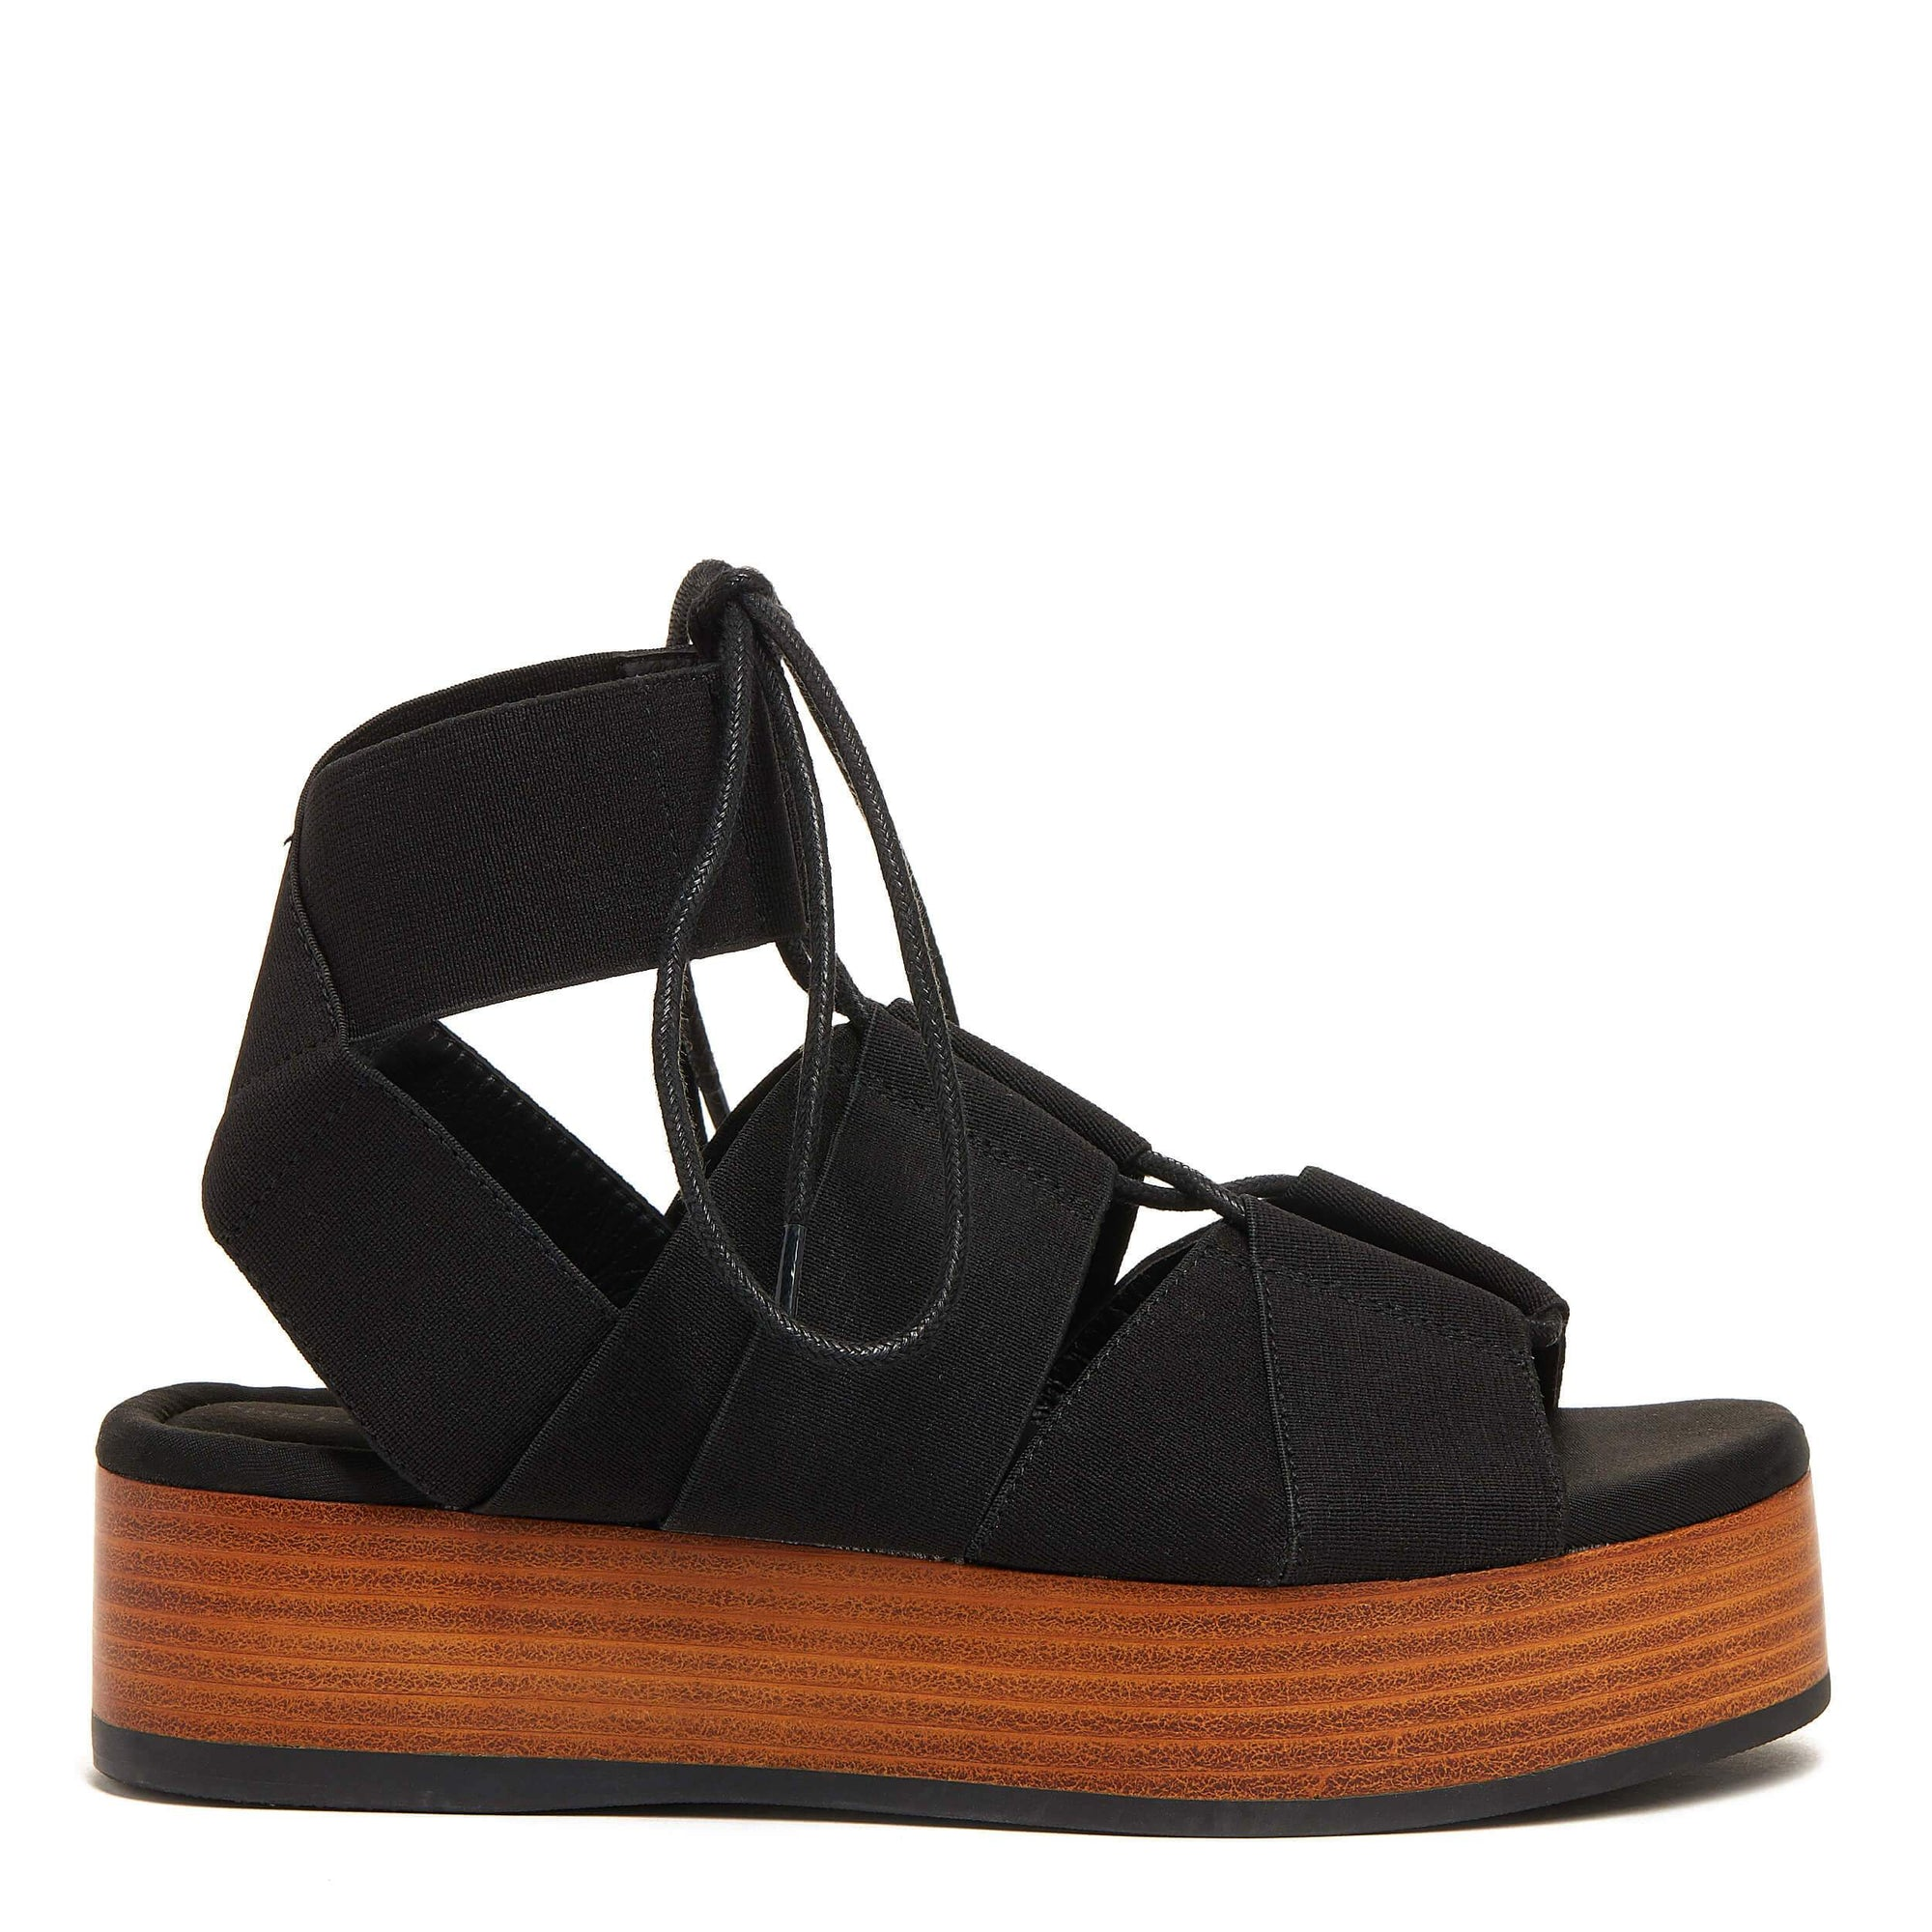 Decatur Black Platform Sandal